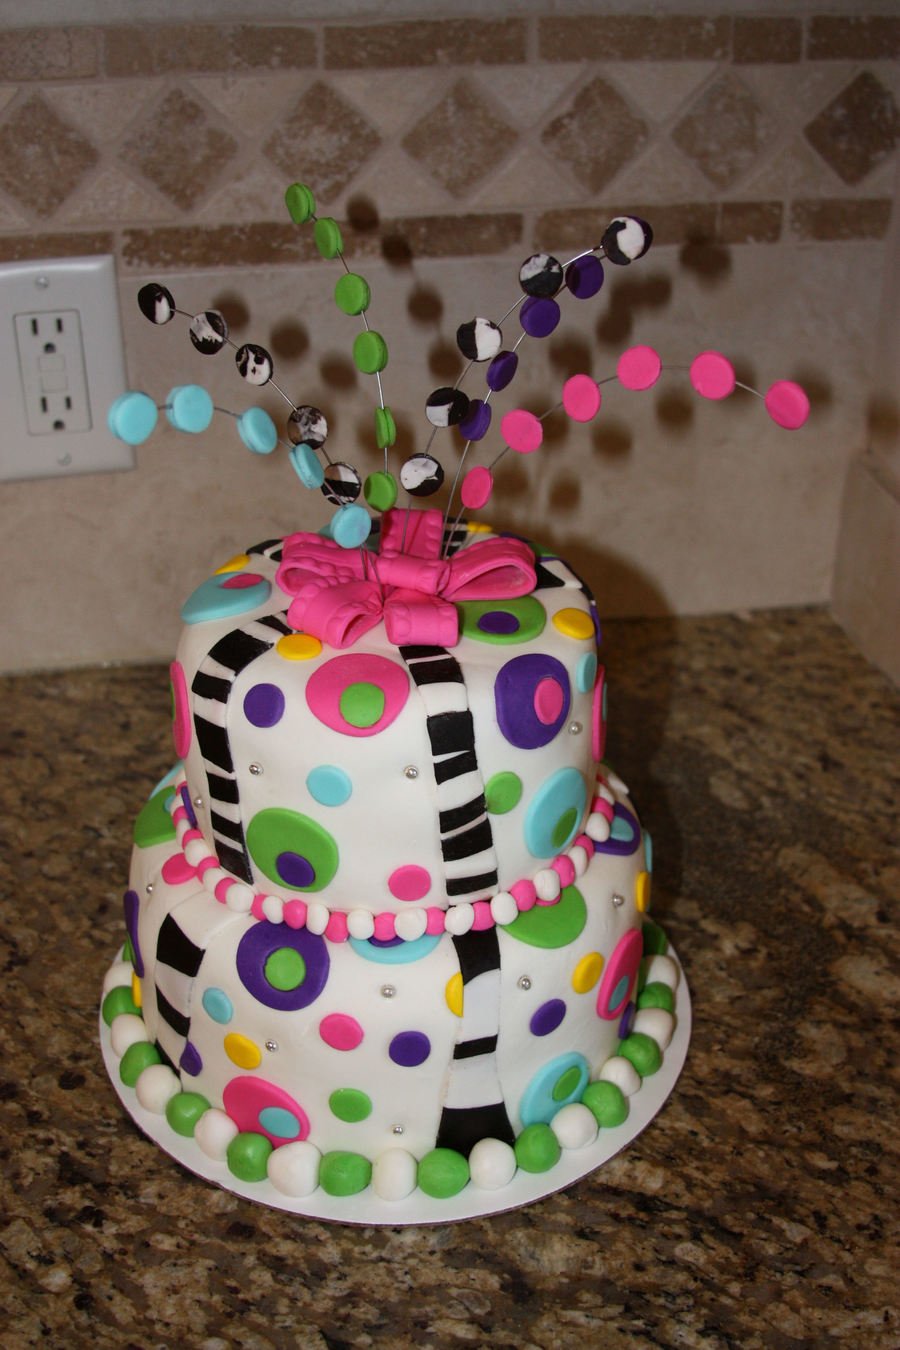 Crazy Colors & Polka Dots! on Cake Central